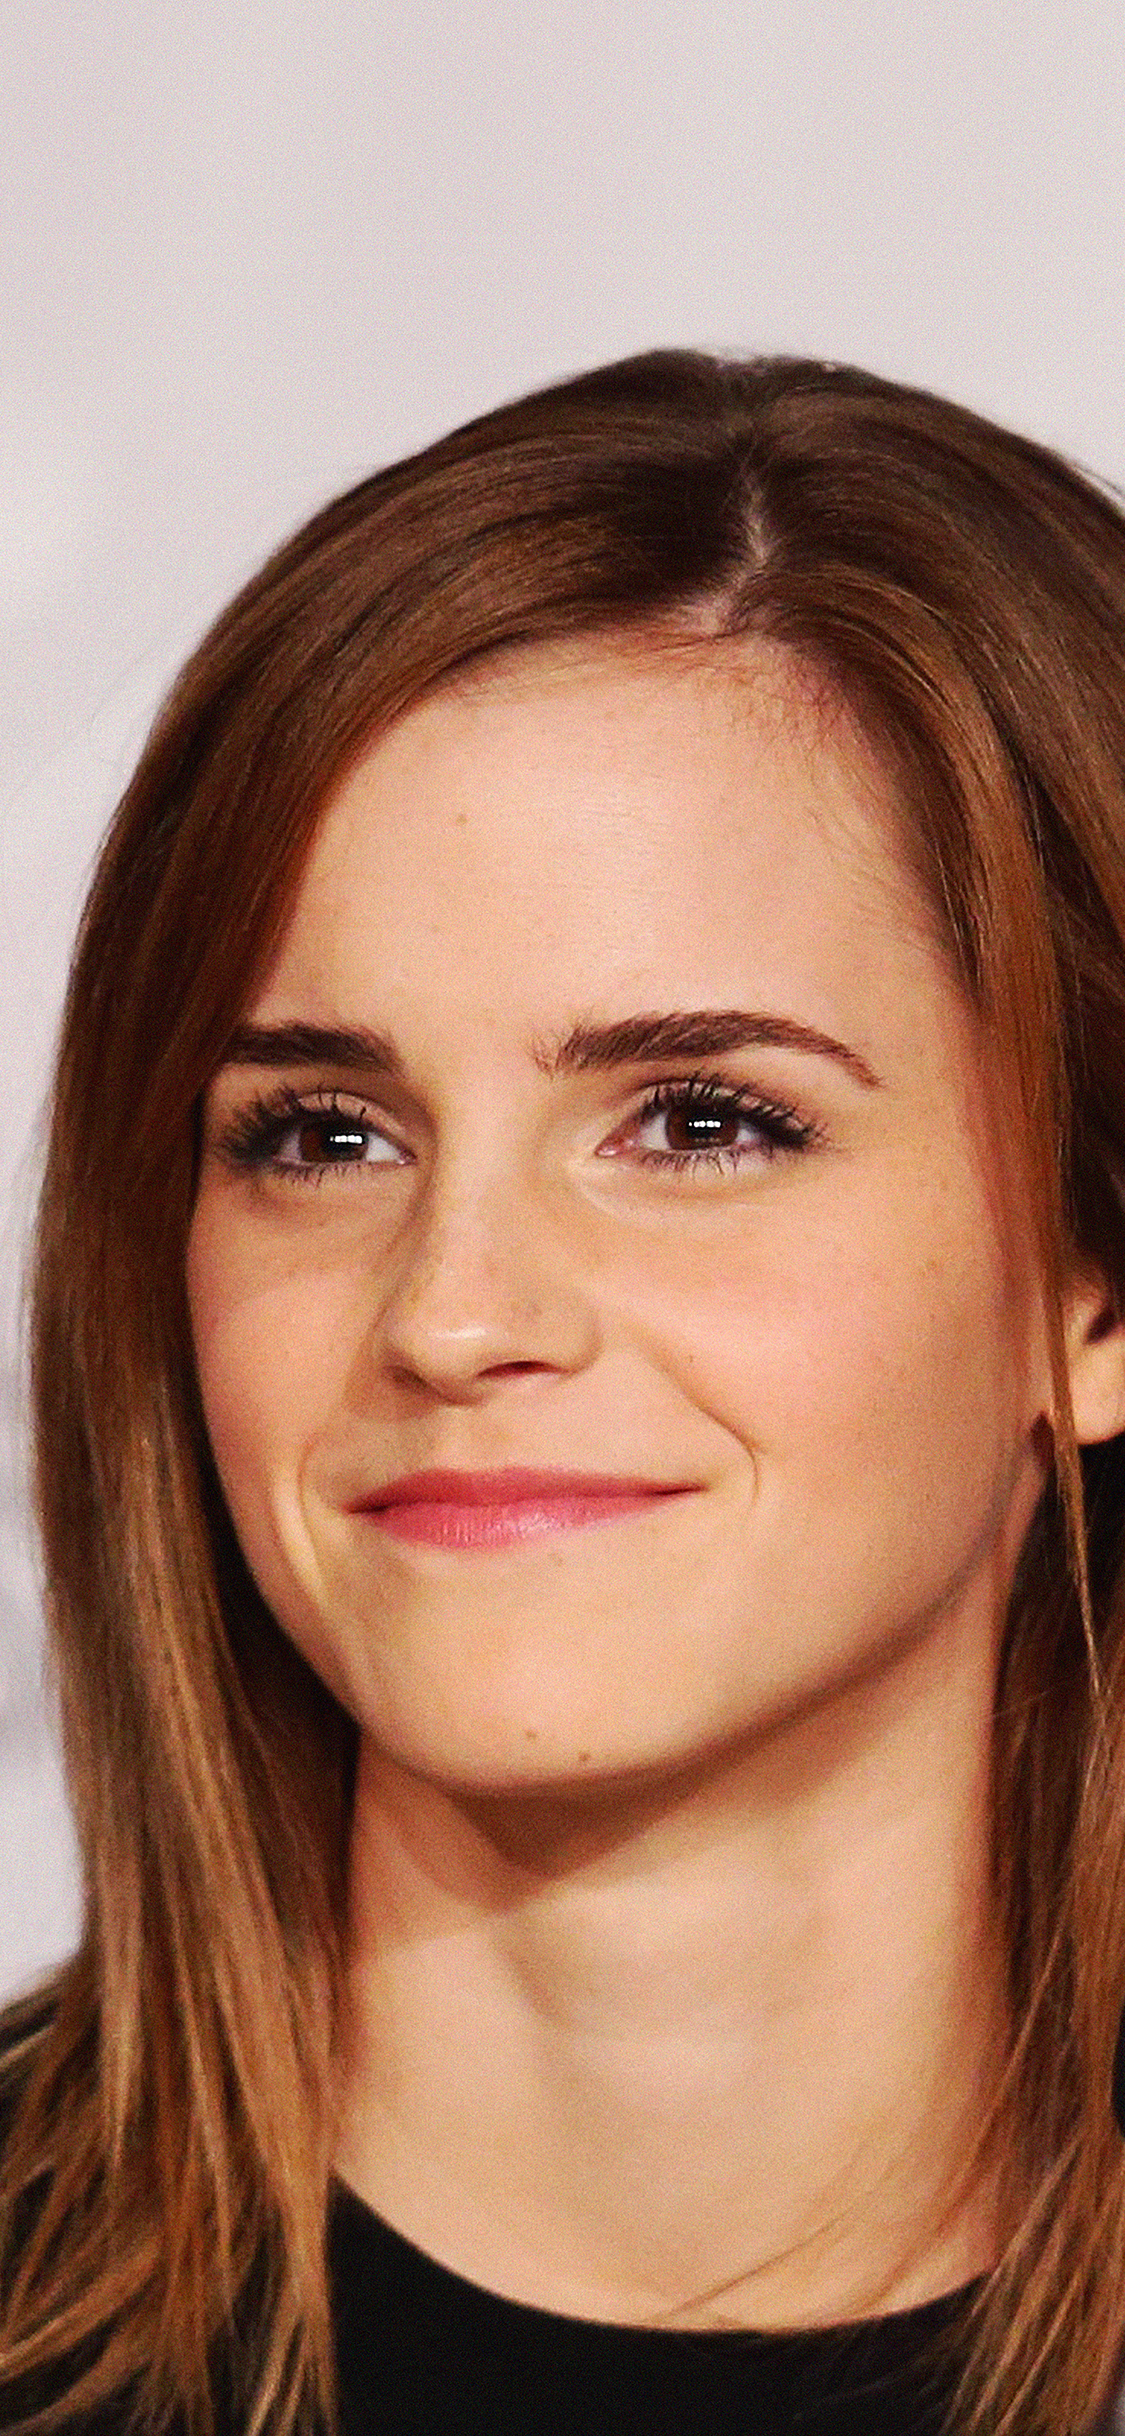 iPhoneXpapers.com-Apple-iPhone-wallpaper-hb36-wallpaper-emma-watson-smile-cannes-film-girl